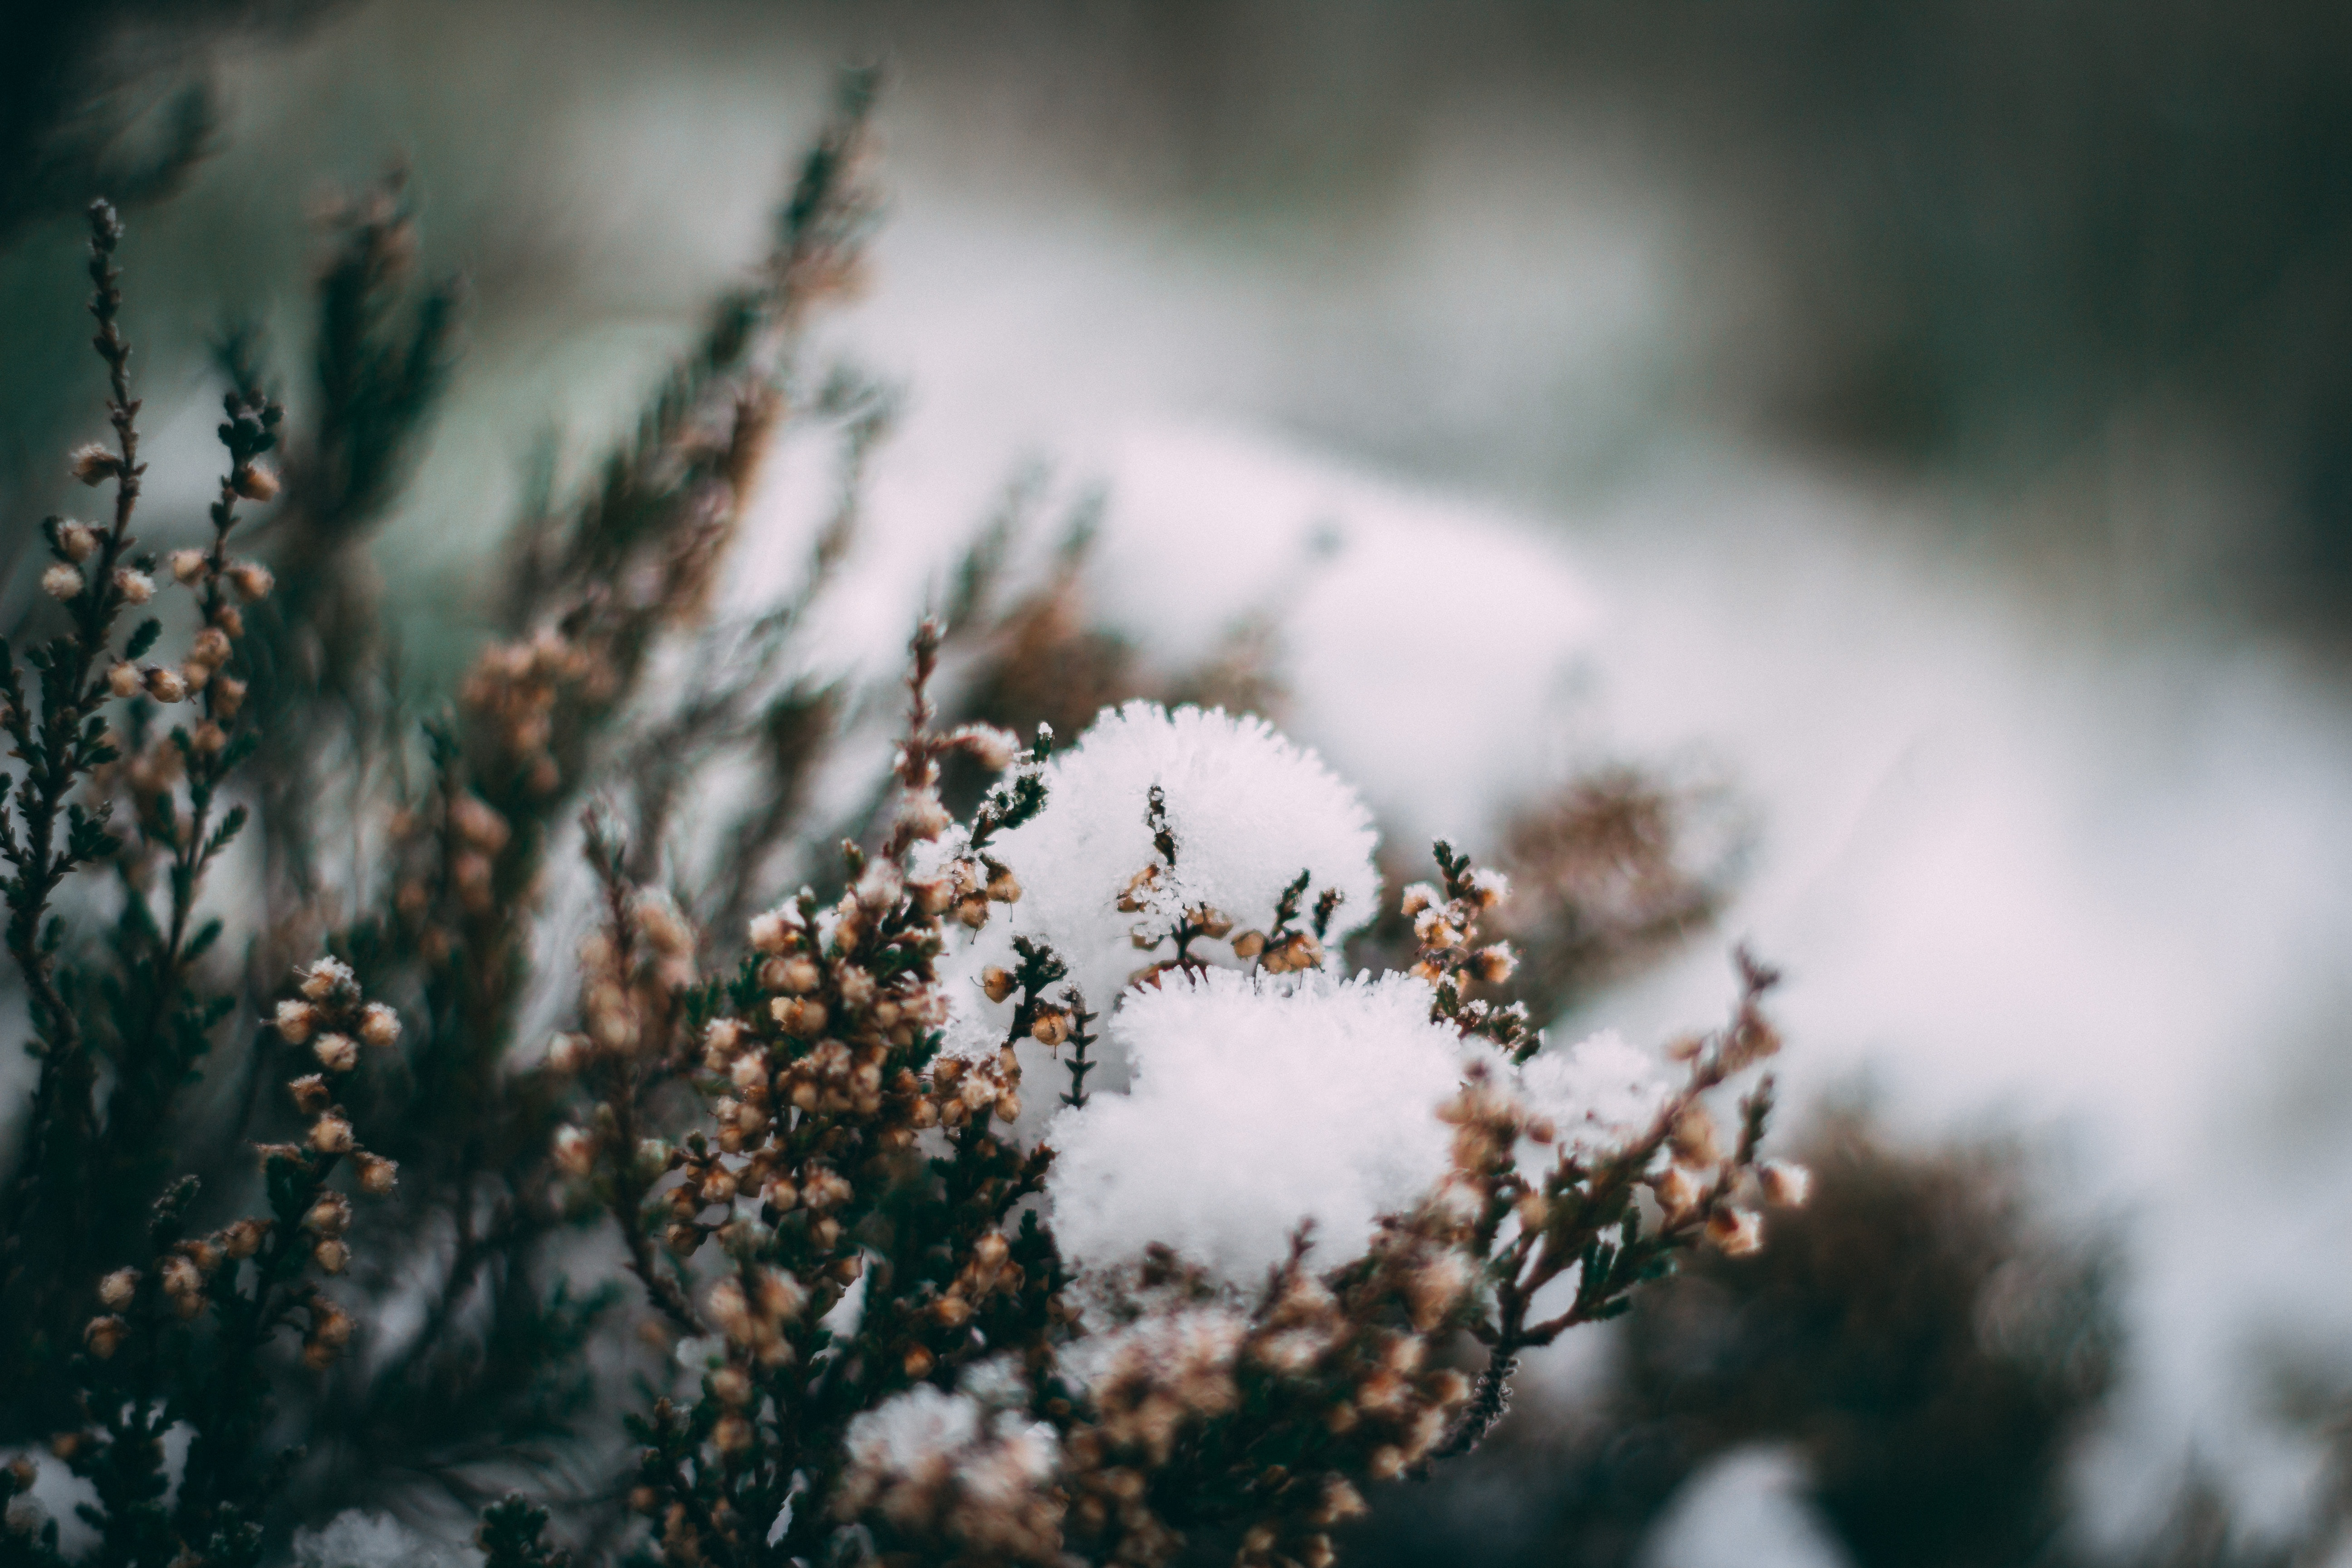 Close-up Photography of Frozen Flower, Blur, Frozen, Winter, Snowy, HQ Photo